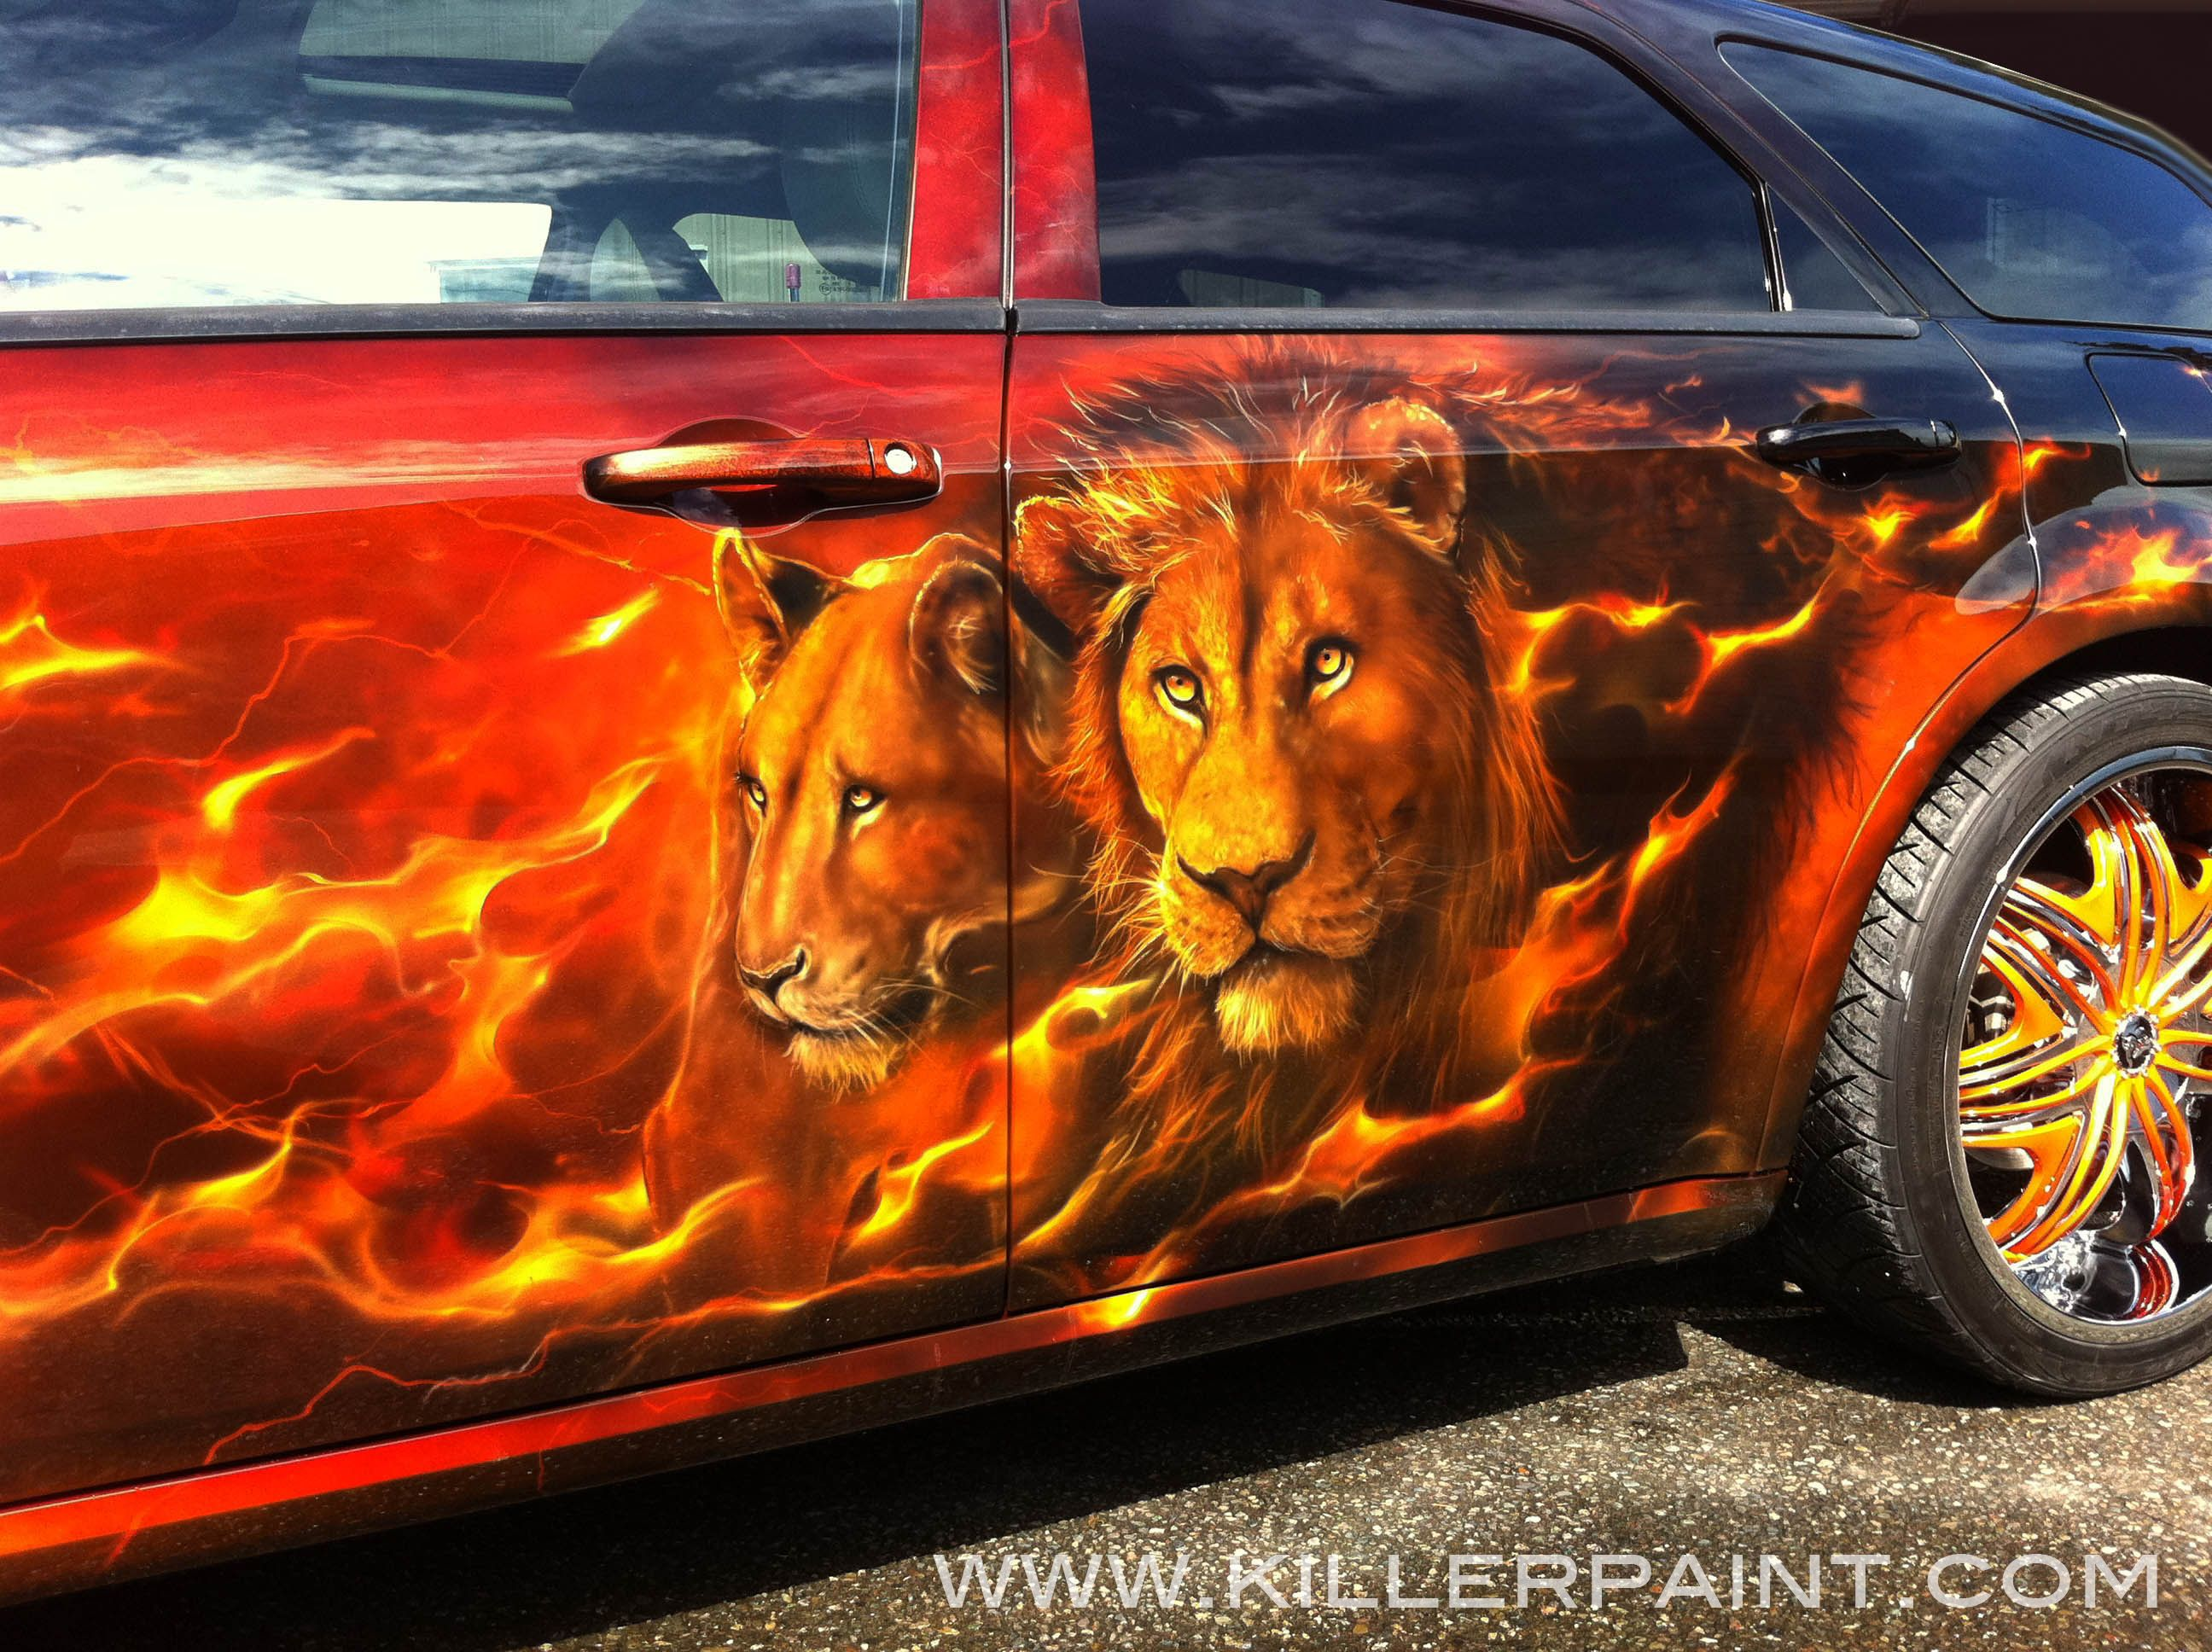 Dodge Magnum Cats Roar Auctioned Off With Of The - Custom vinyl decals for rc carsimages of cars painted with flames true fire flames on rc car